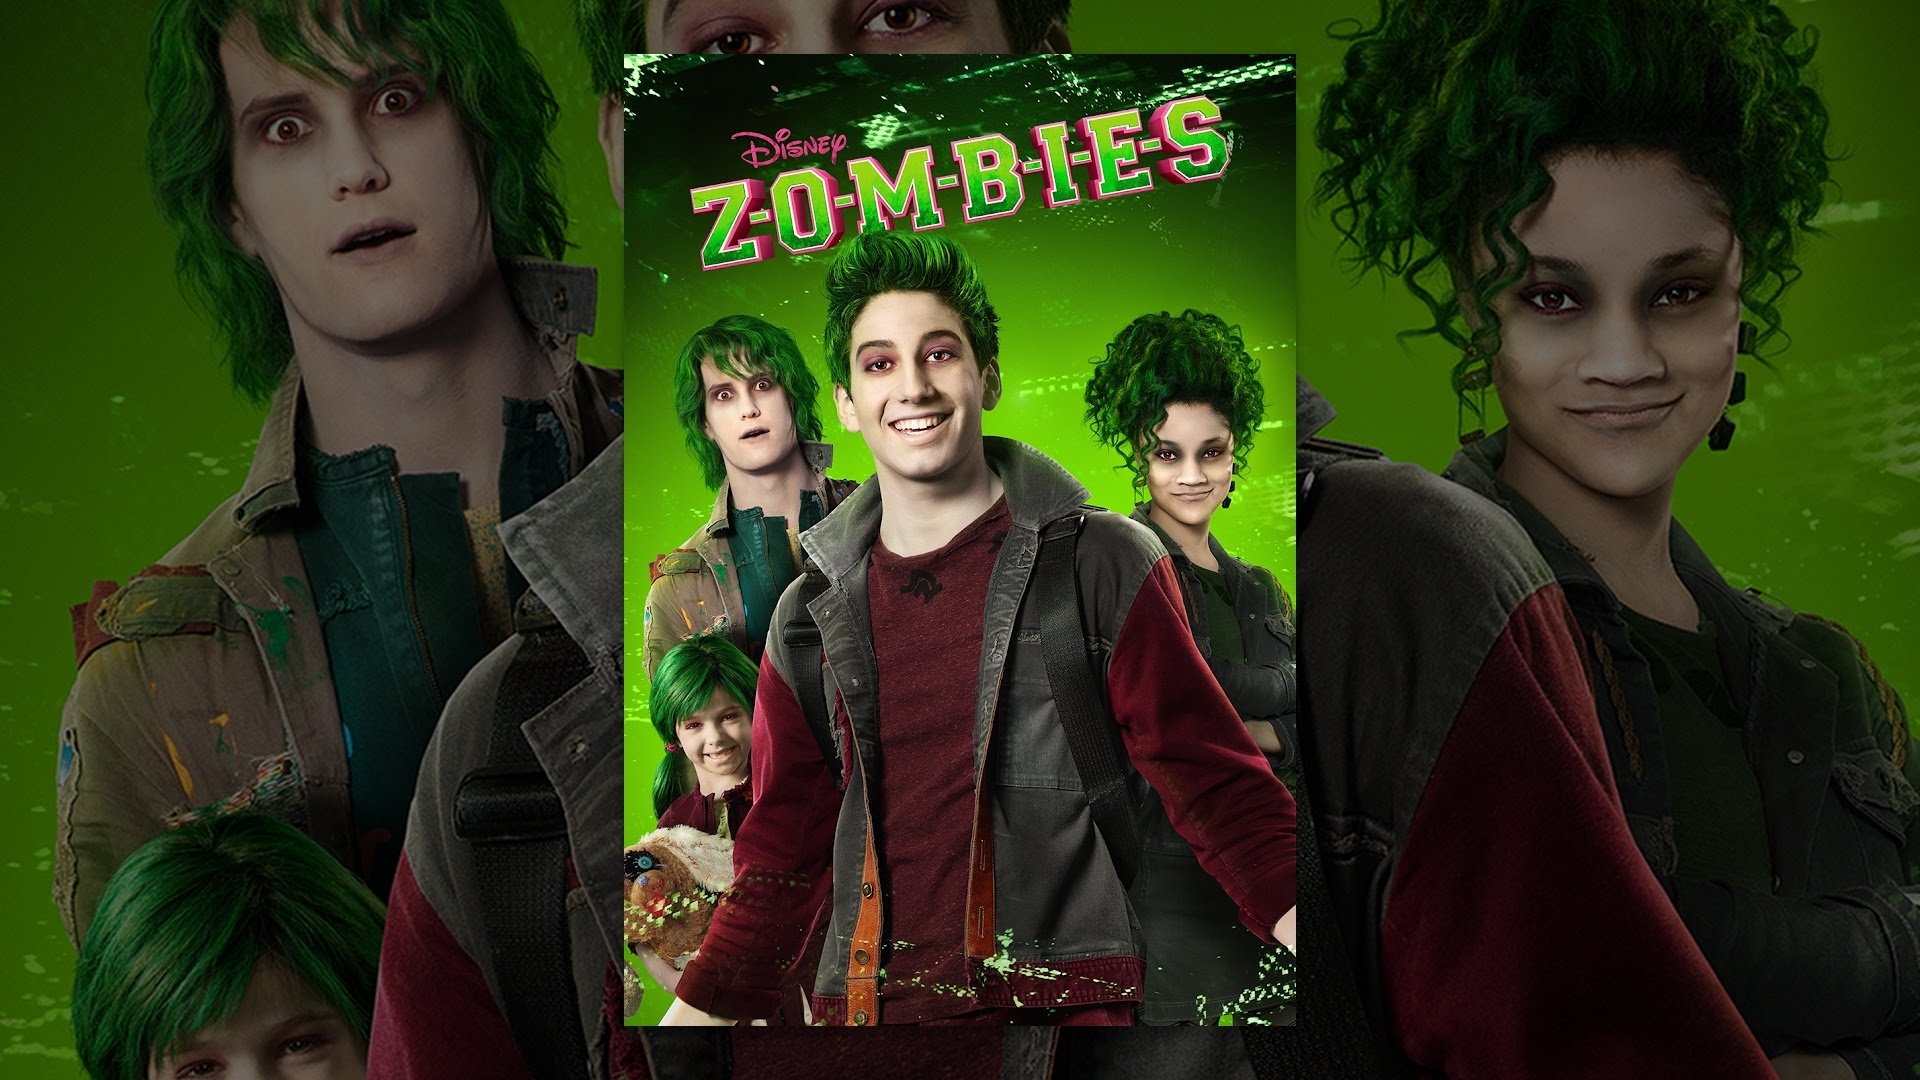 Zombies Disney Full Movie 123movies